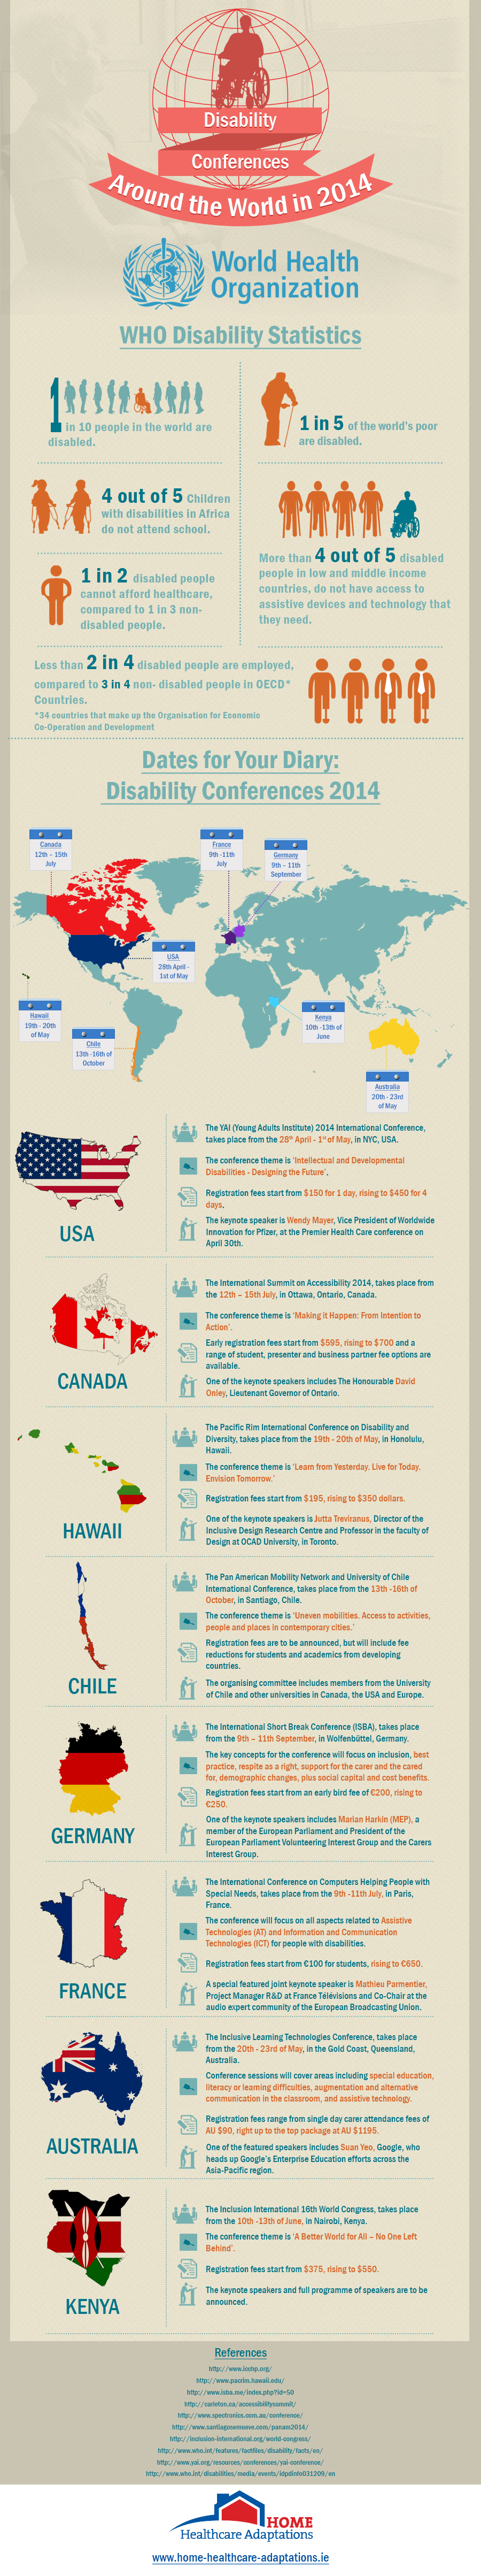 The Disability Conferences Around the World in 2014 You Need to Attend, An Infographic